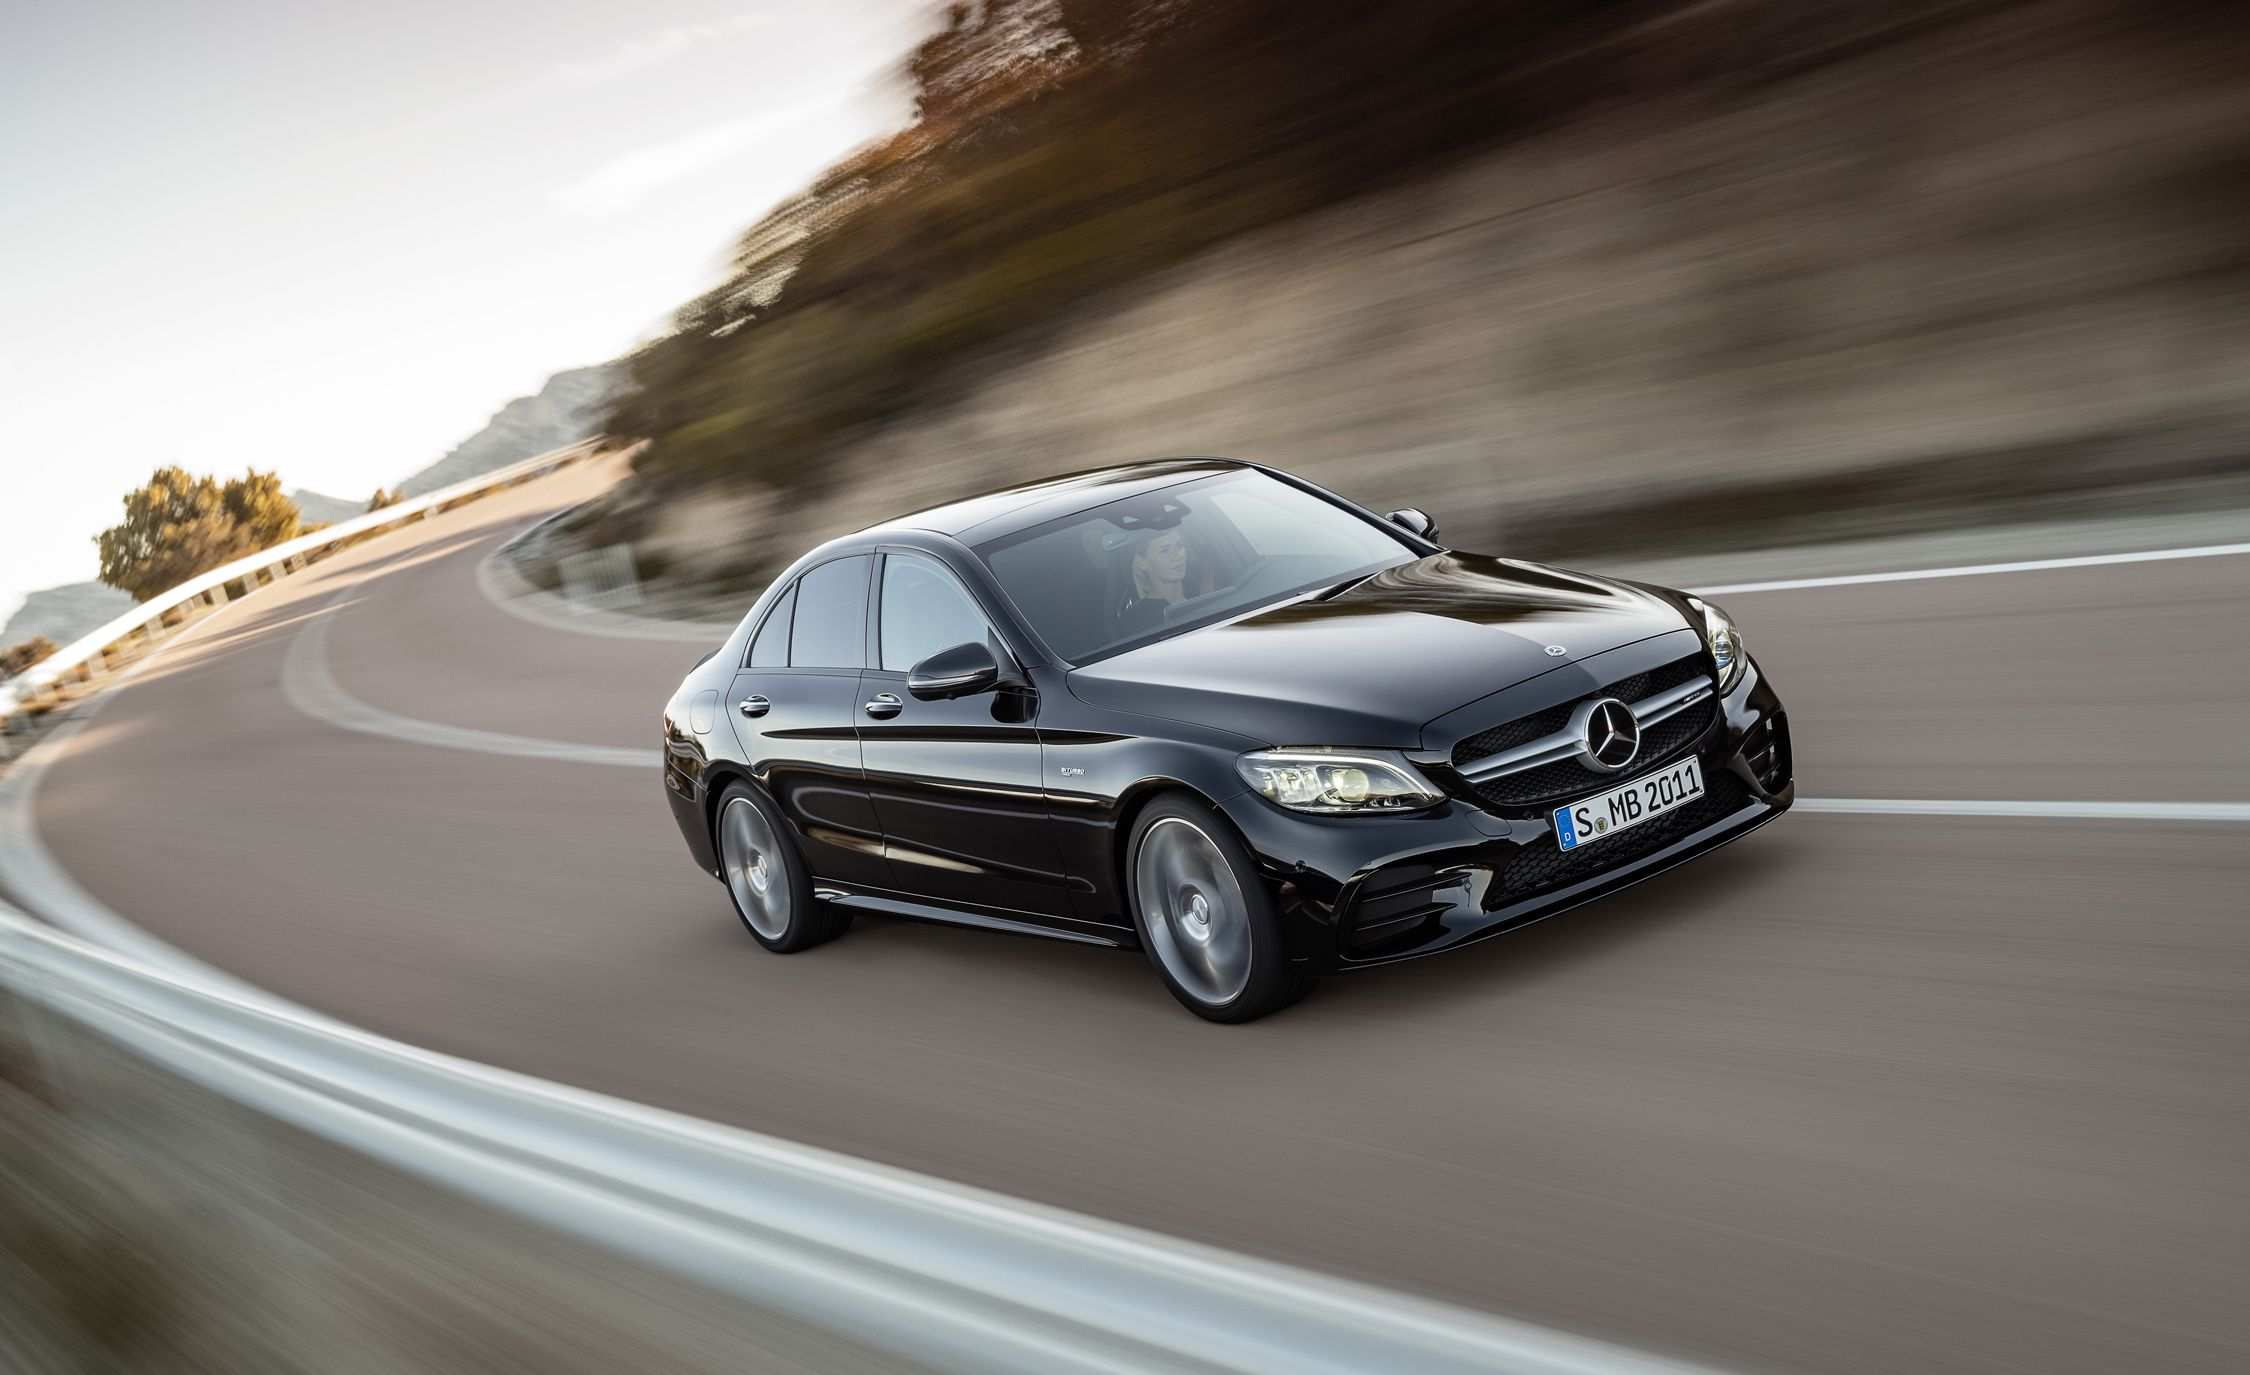 2019 Mercedes Amg C43 Reviews Price Photos And Car Exhaust Diagram The Is From Subaru Specs Driver